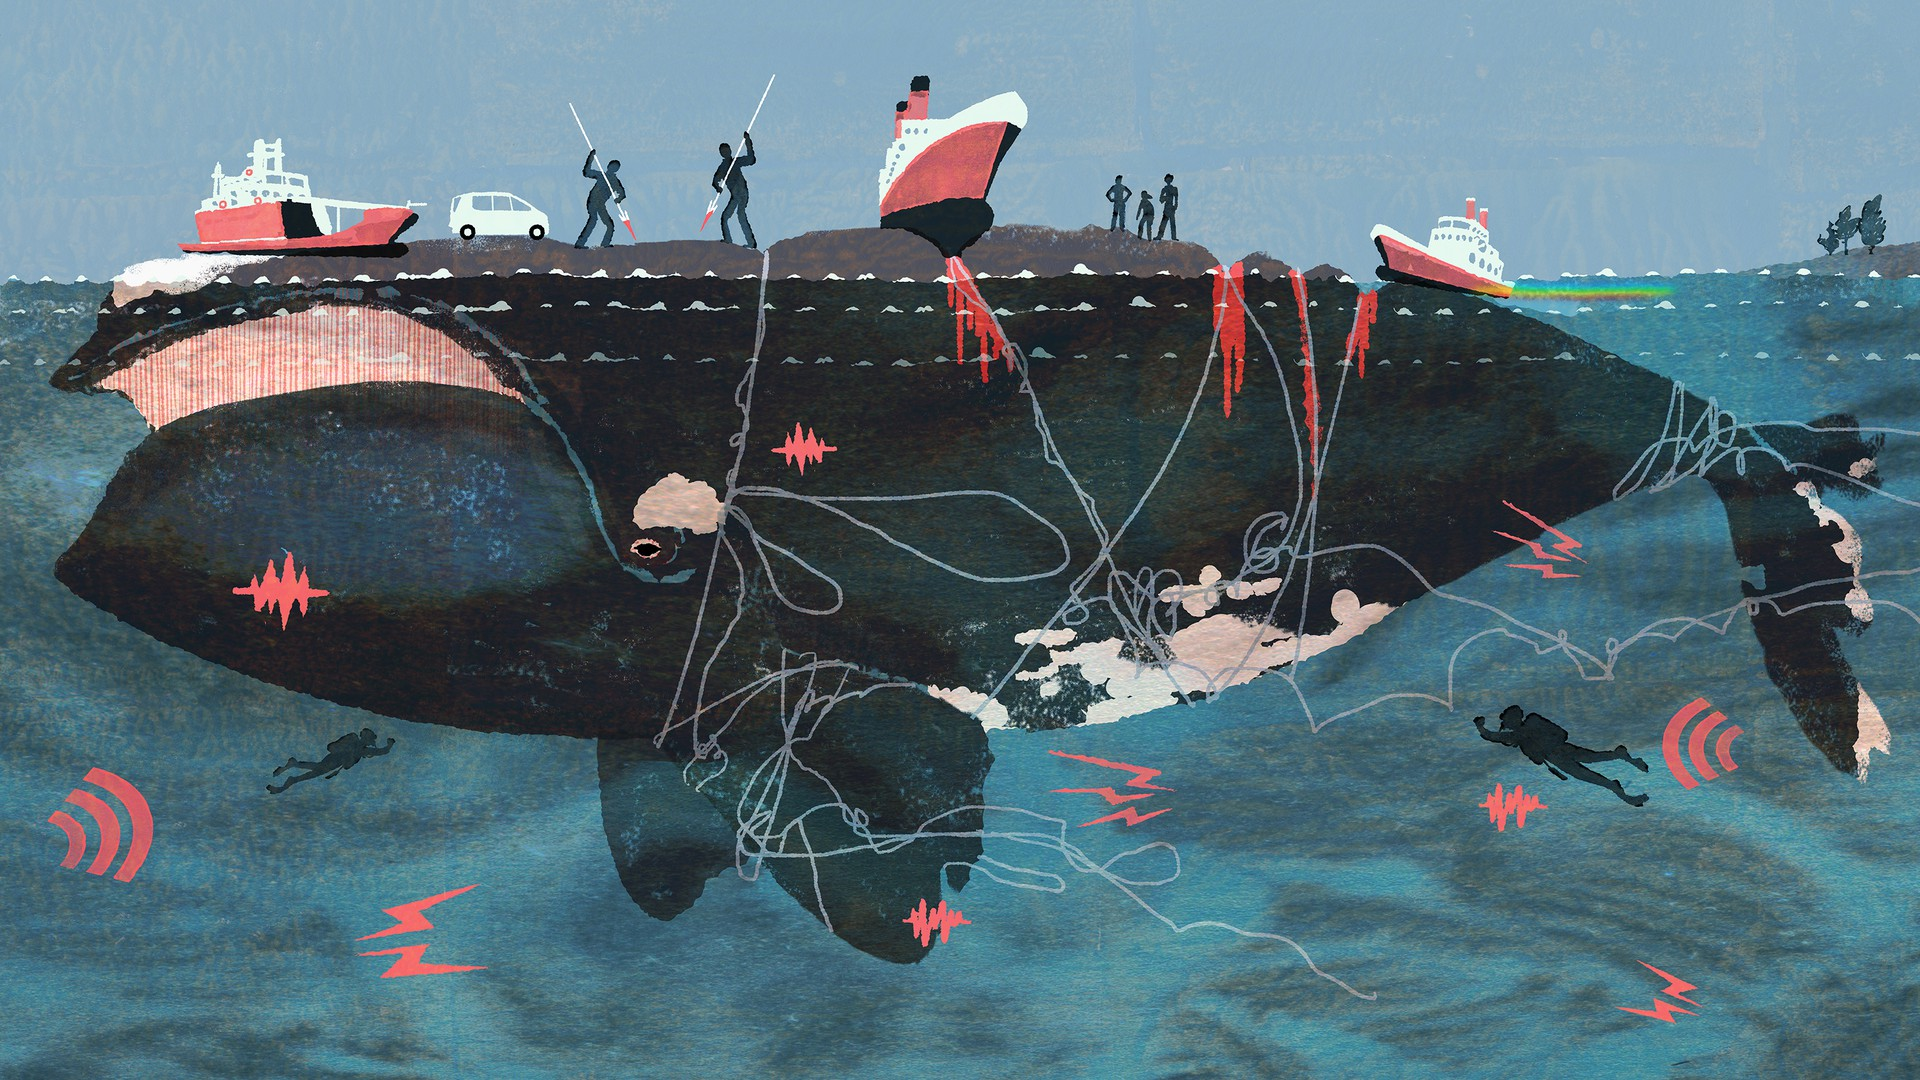 An illustration of a whale covered in bruises and rope